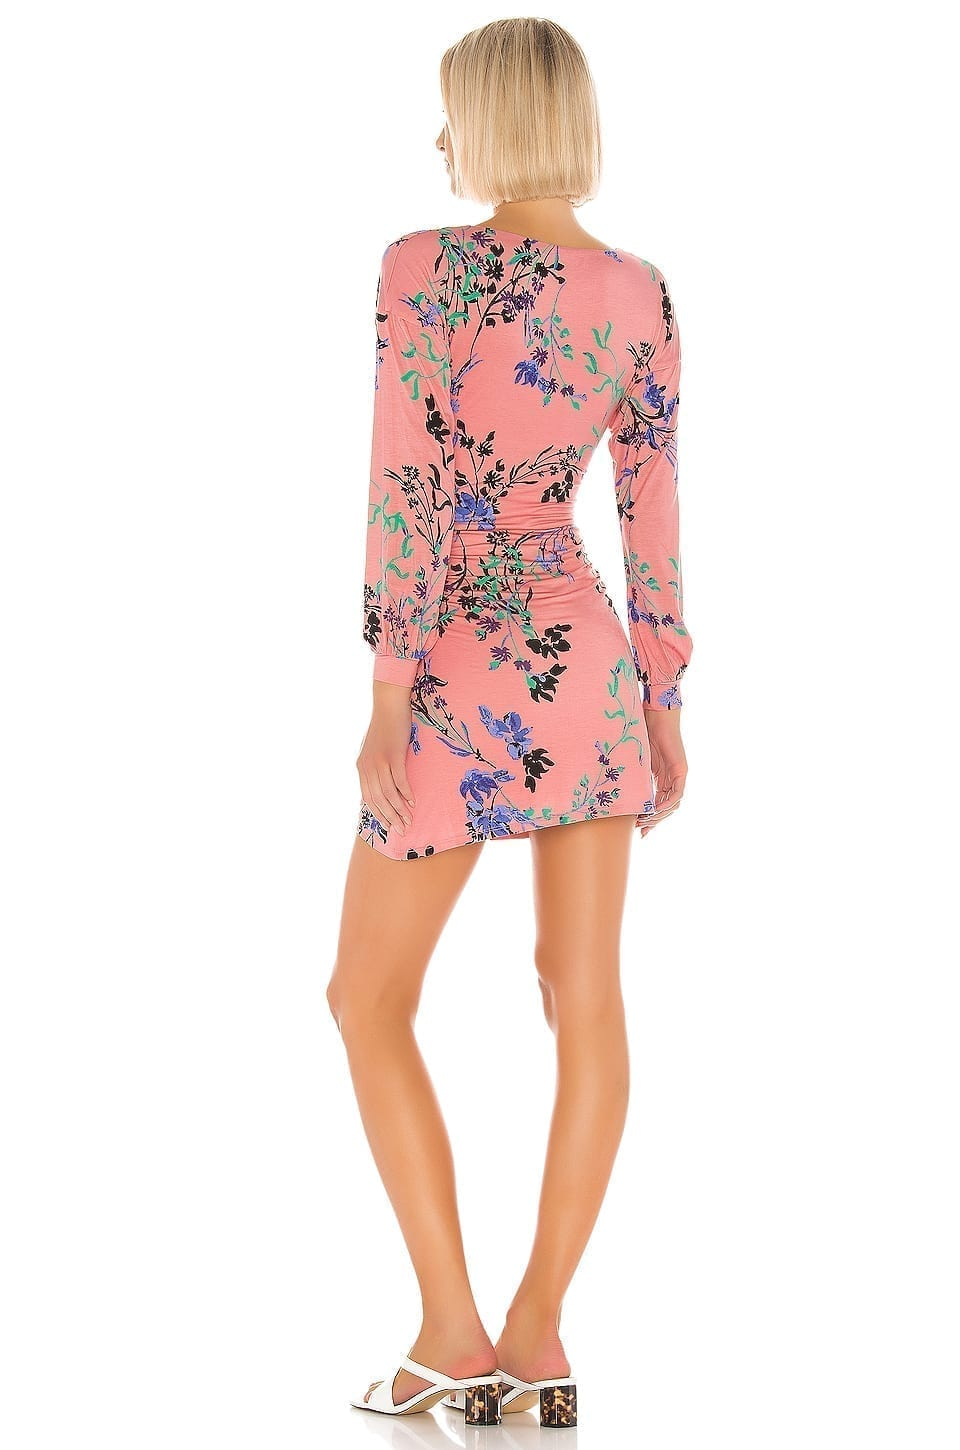 HOUSE OF HARLOW 1960 X REVOLVE Siri Dress